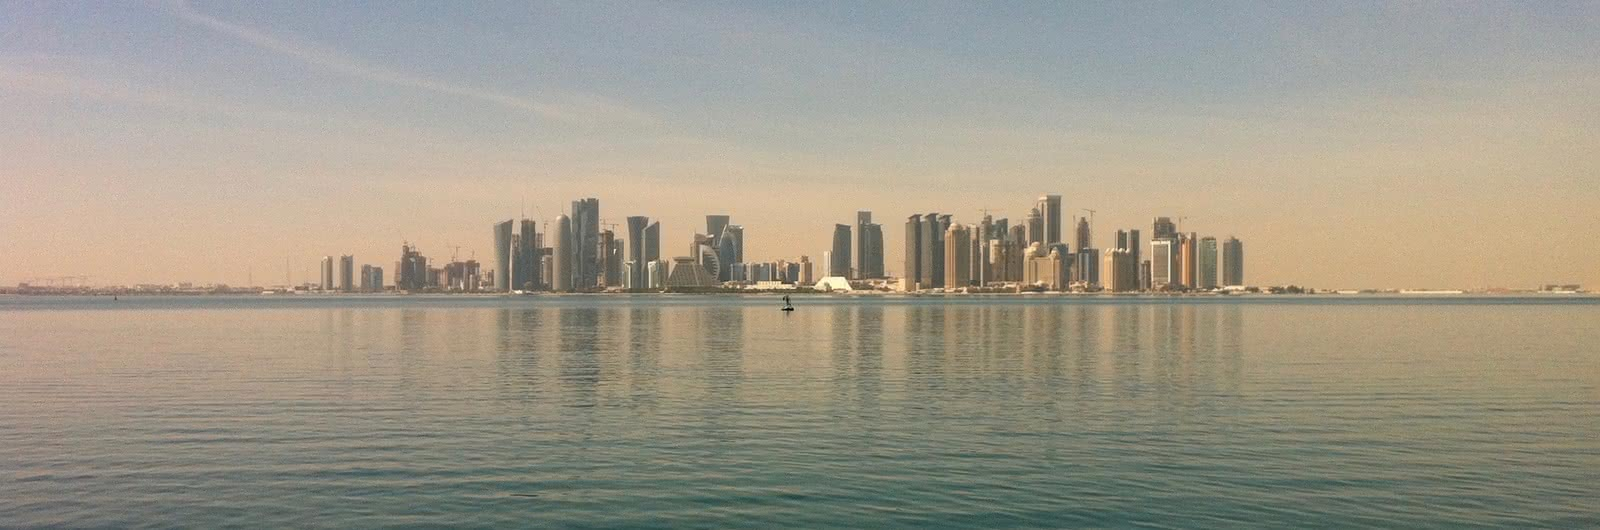 doha city header